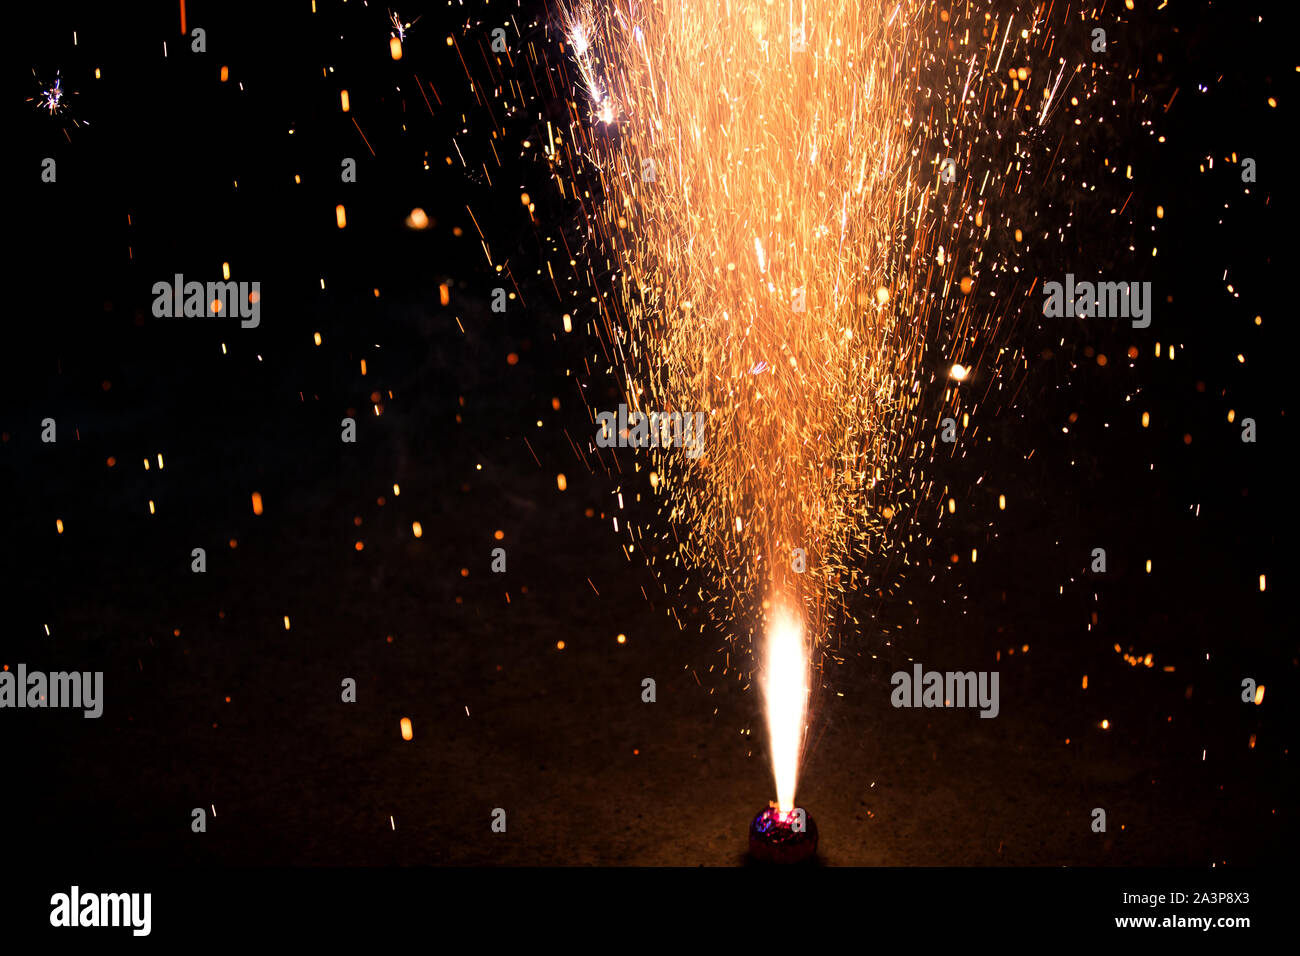 A sparkling fireworks during Celebration of Diwali In India Say no To Fireworks Stock Photo